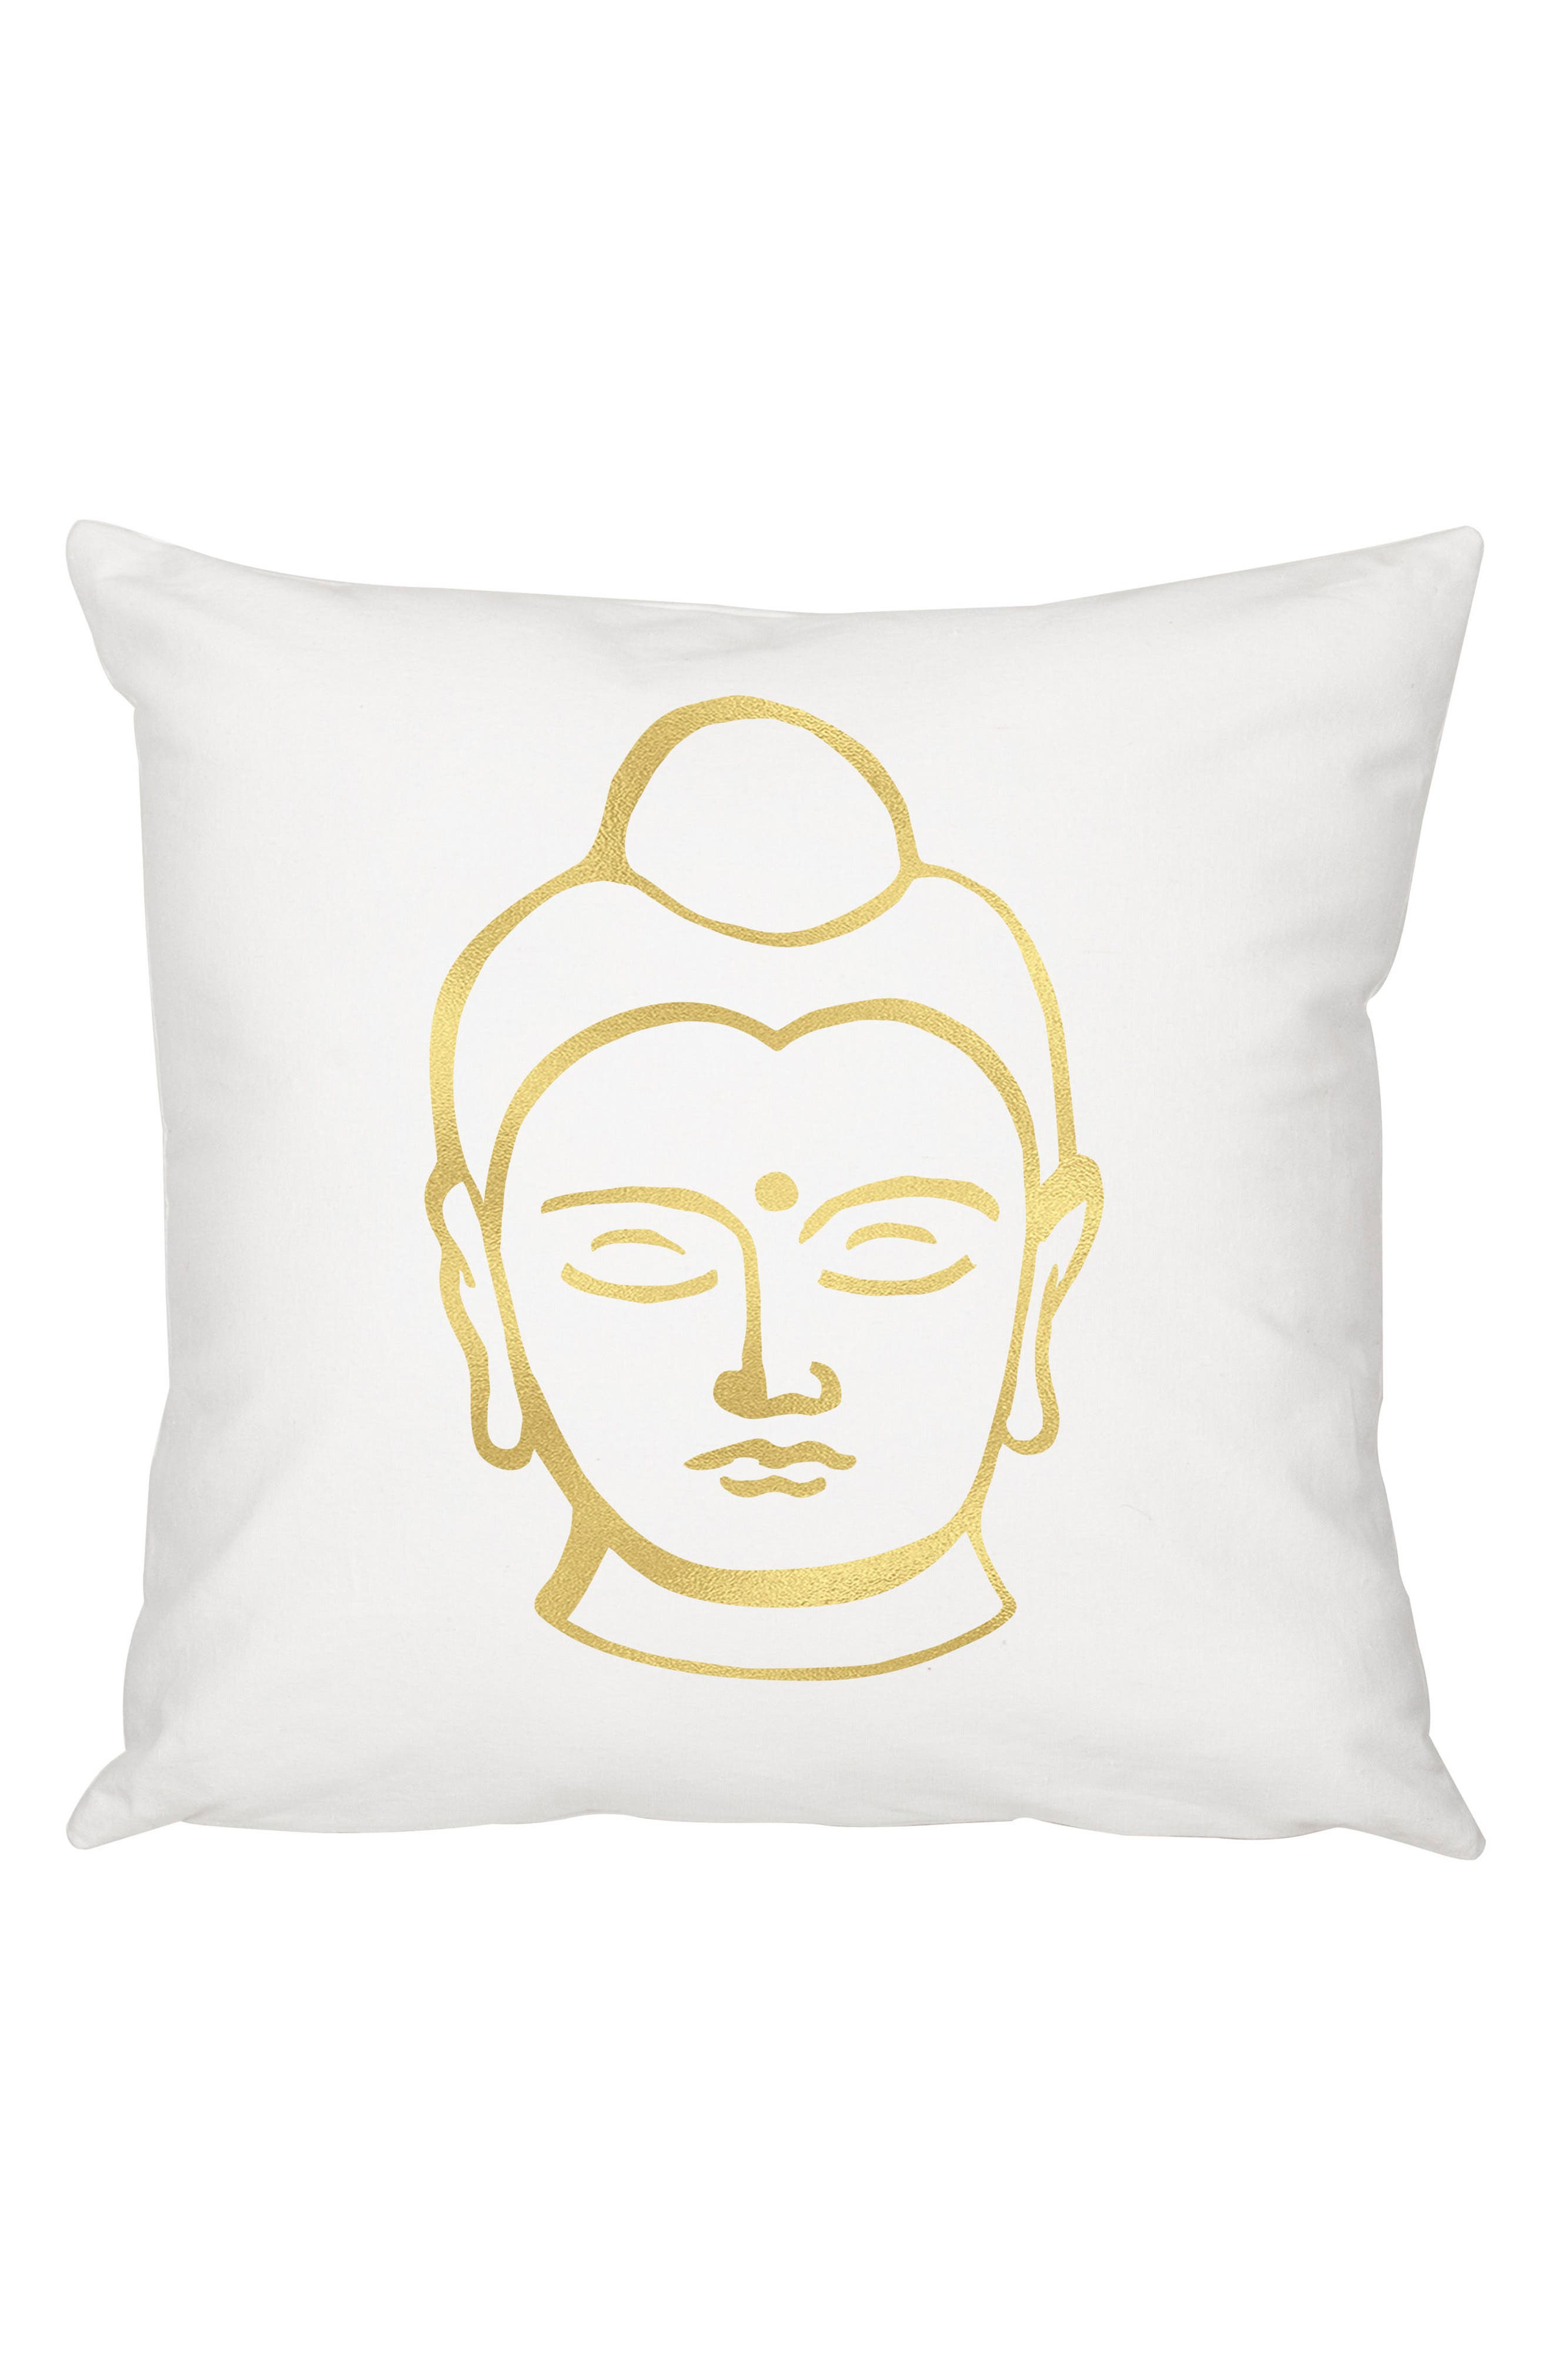 Cathy's Concepts Buddha Accent Pillow